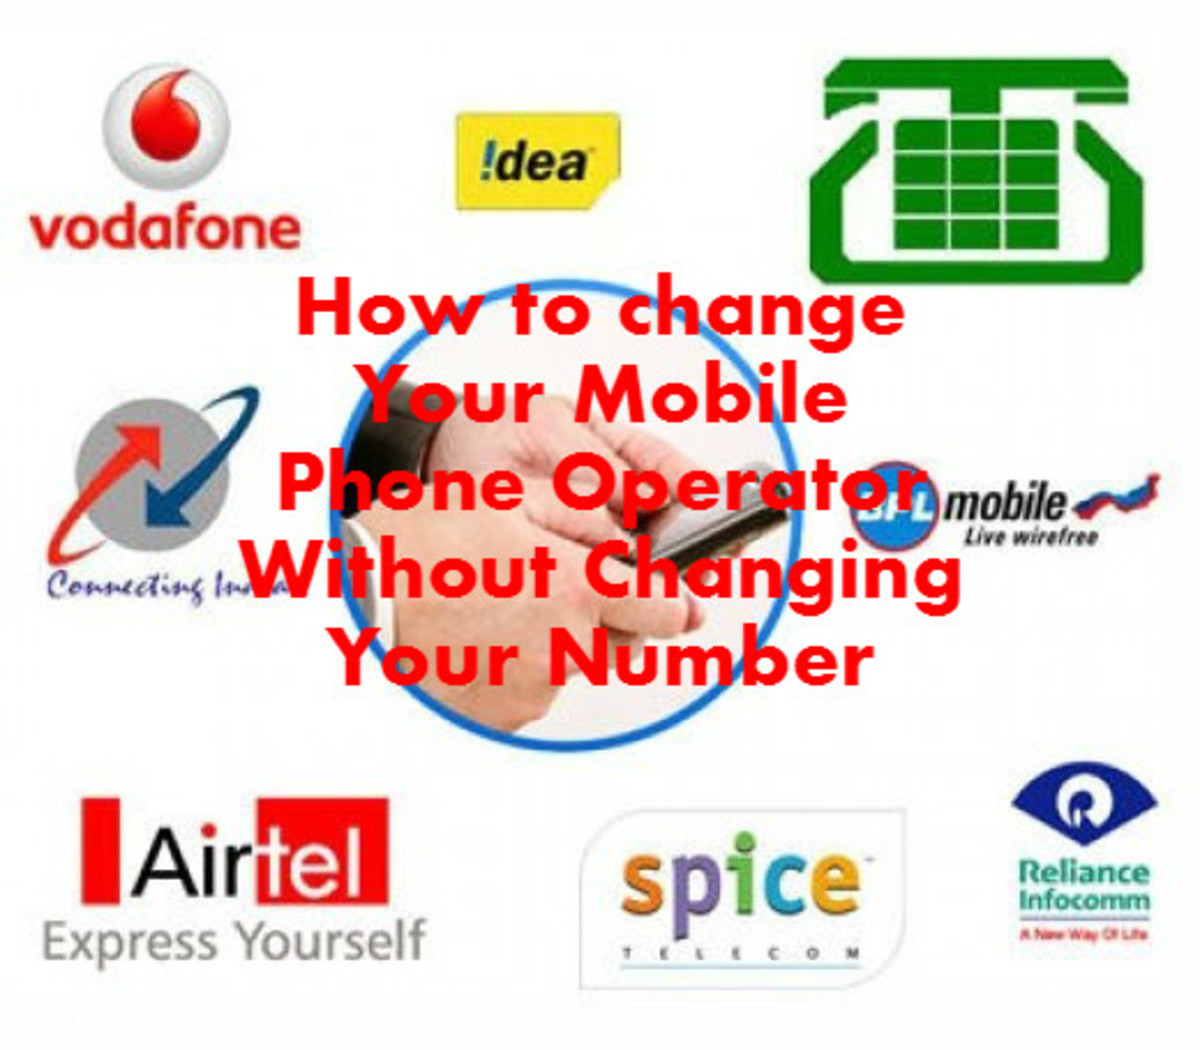 How to Change Your Mobile Network Without Changing Number in India